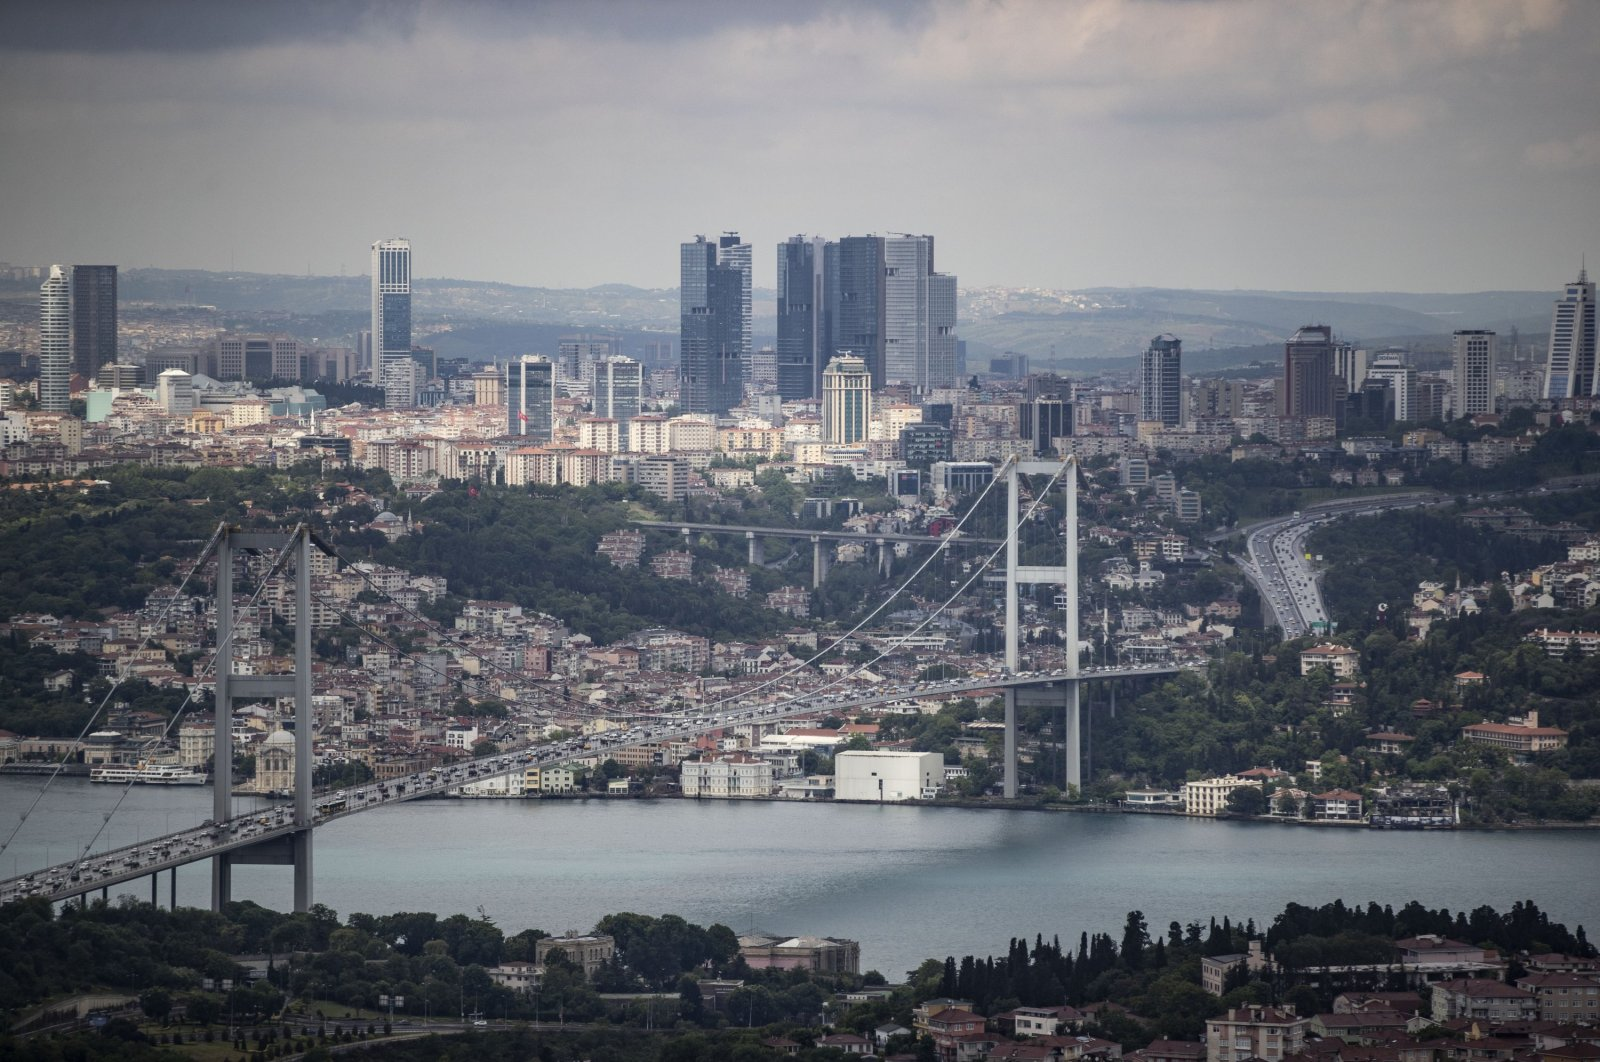 A general view of the July 15 Martyrs Bridge, formerly known as the Bosporus Bridge, and surrounding buildings and skyscrapers, Istanbul, Turkey, May 28, 2020. (AA Photo)